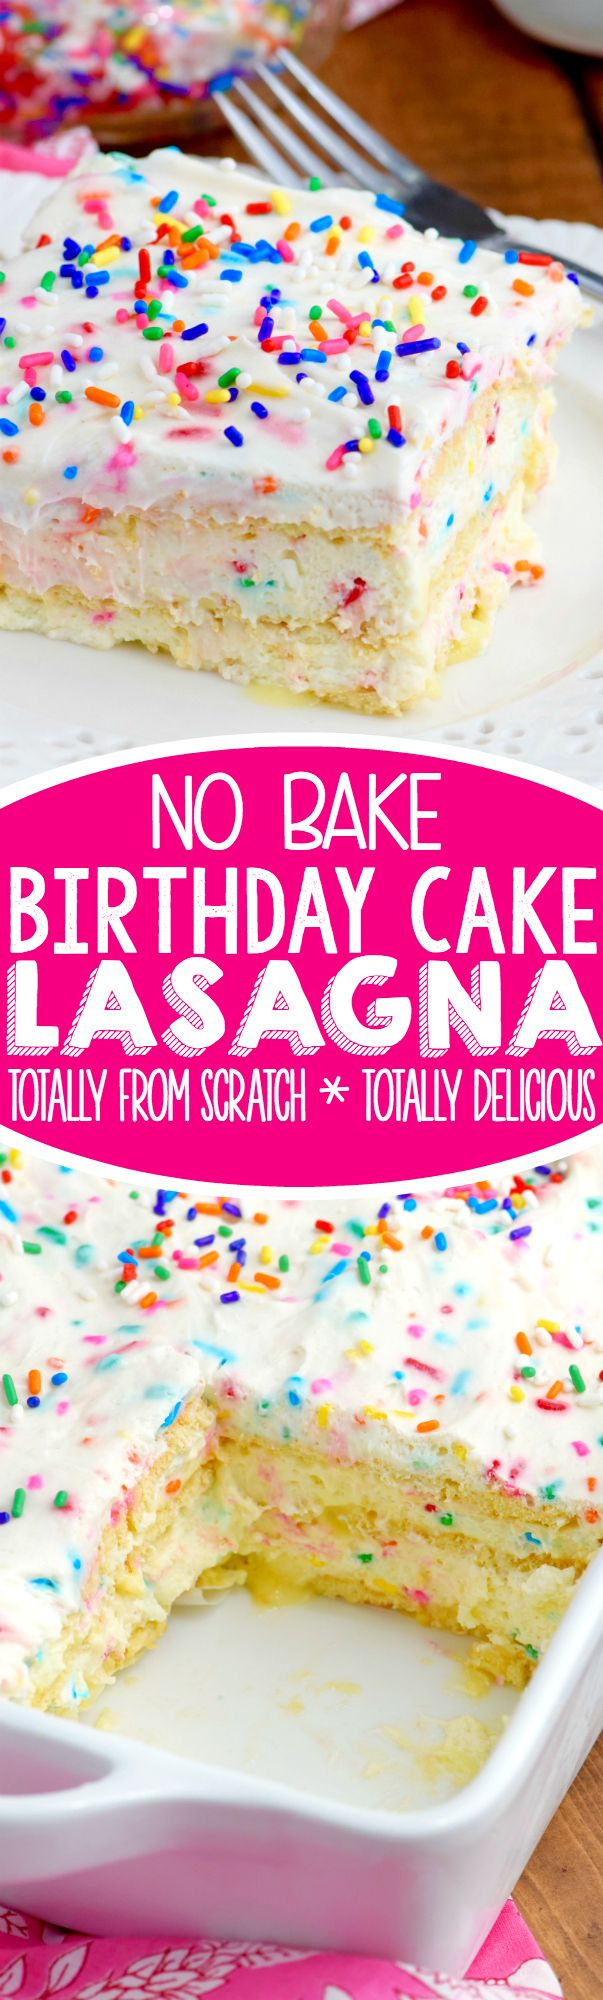 Birthday Cake Flavors This No Bake Birthday Cake Lasagna Is The Perfect Dessert Full Of